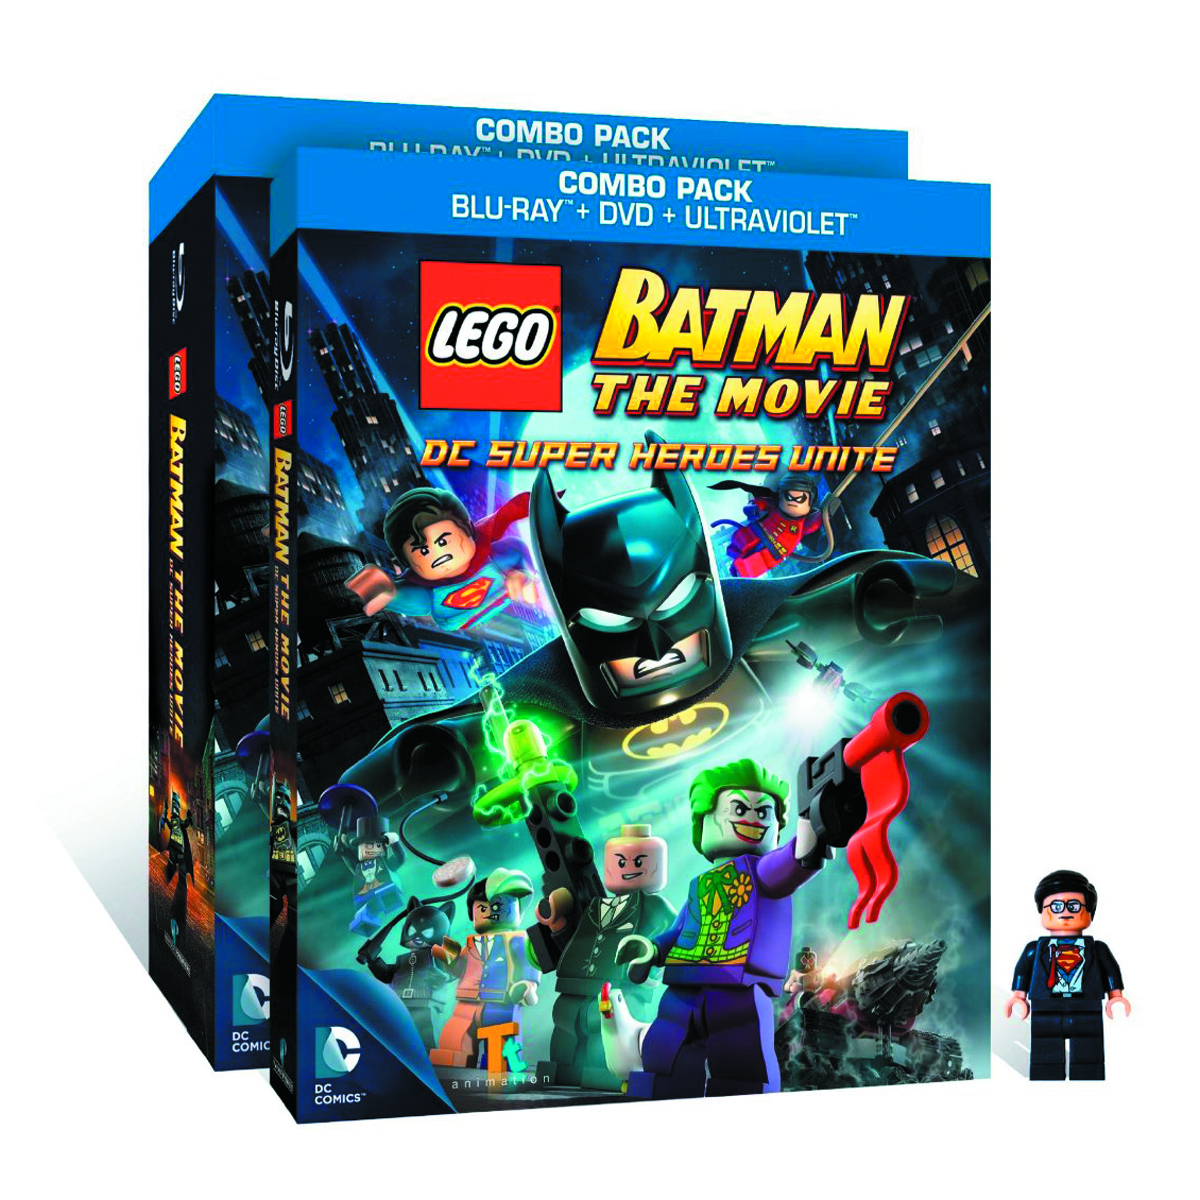 LEGO BATMAN THE MOVIE BD + DVD + MINIFIG